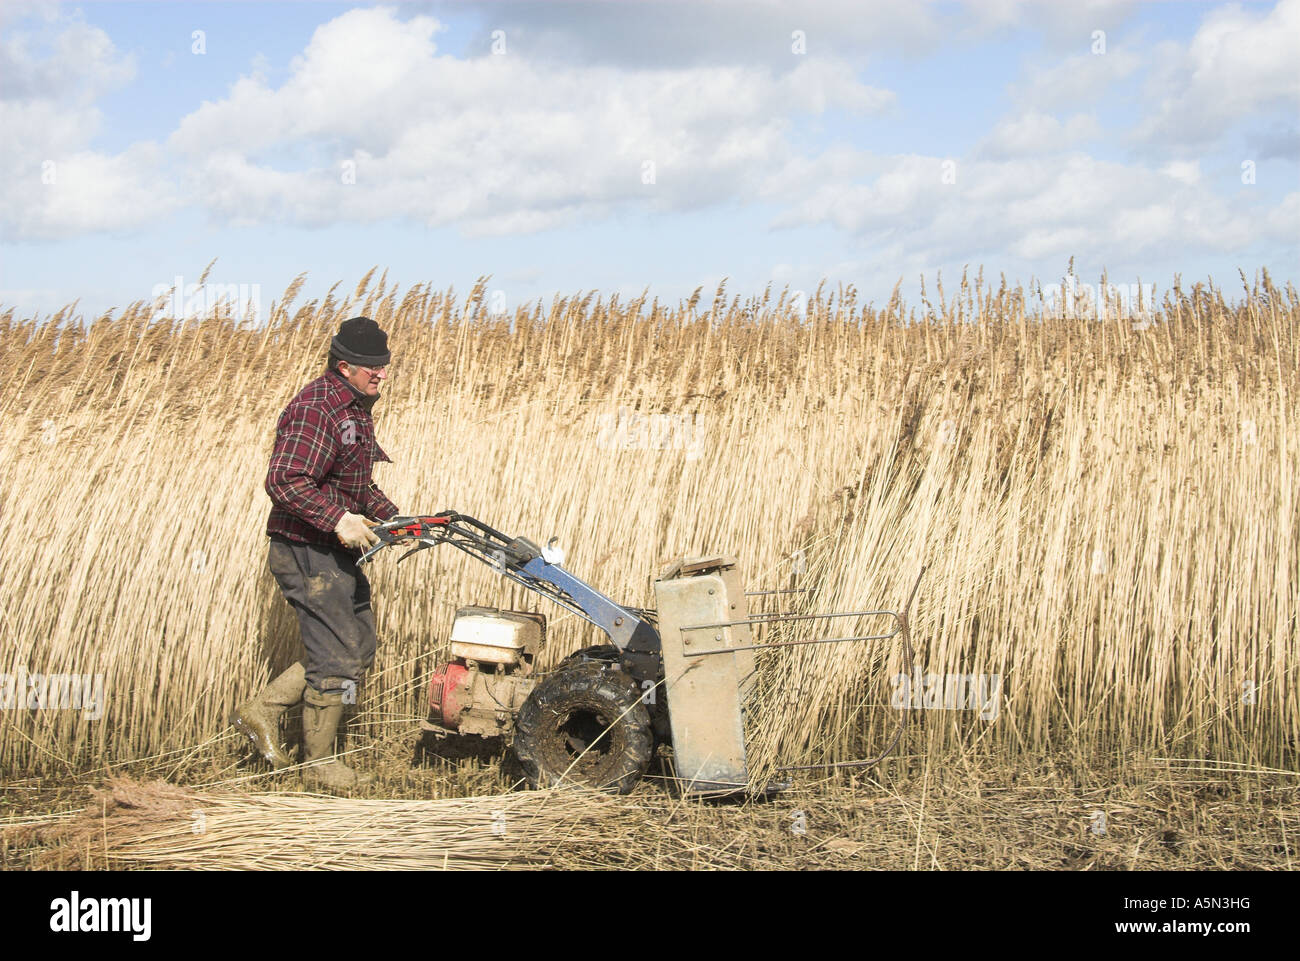 Reedcutter using mechanised cutter to harvest phragmites reed for thatching use North Norfolk March - Stock Image